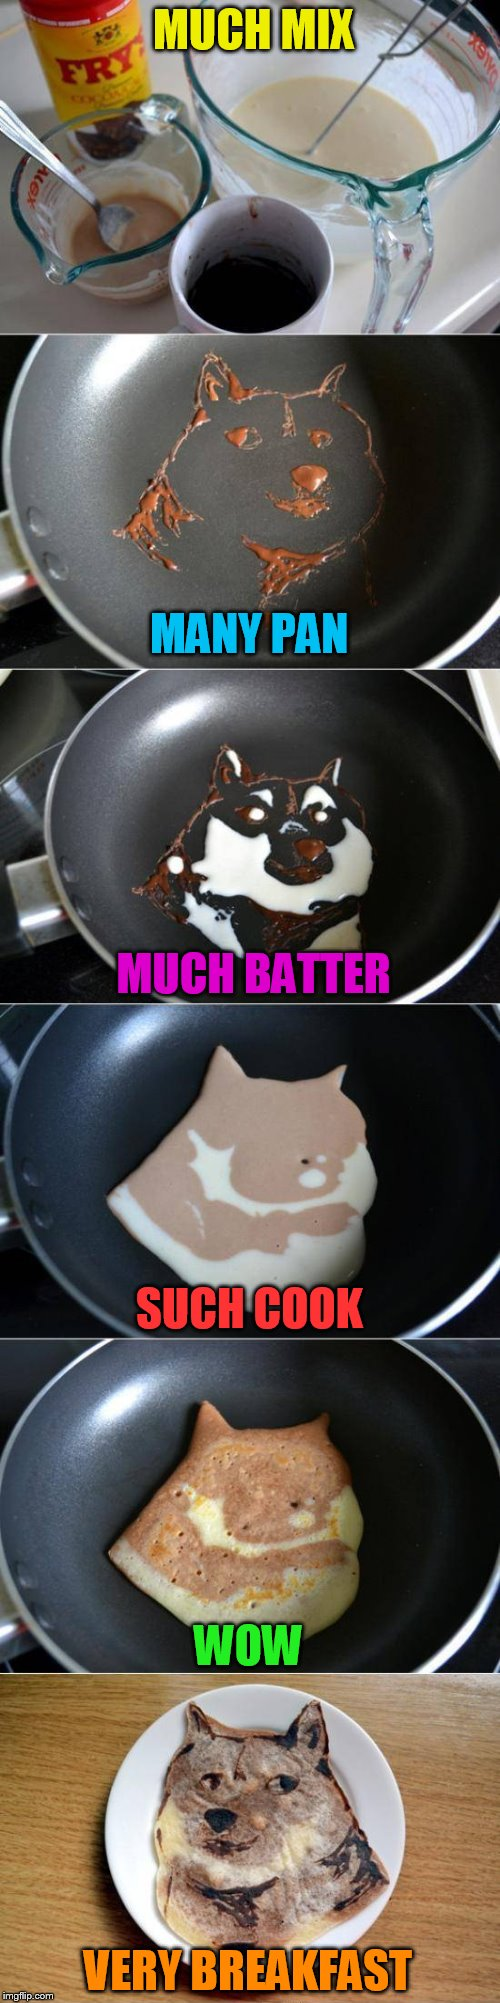 I want my Doge gone breakfast! | MUCH MIX WOW MANY PAN VERY BREAKFAST MUCH BATTER SUCH COOK | image tagged in memes,doge,pancakes,breakfast,frying pan,dashhopes | made w/ Imgflip meme maker